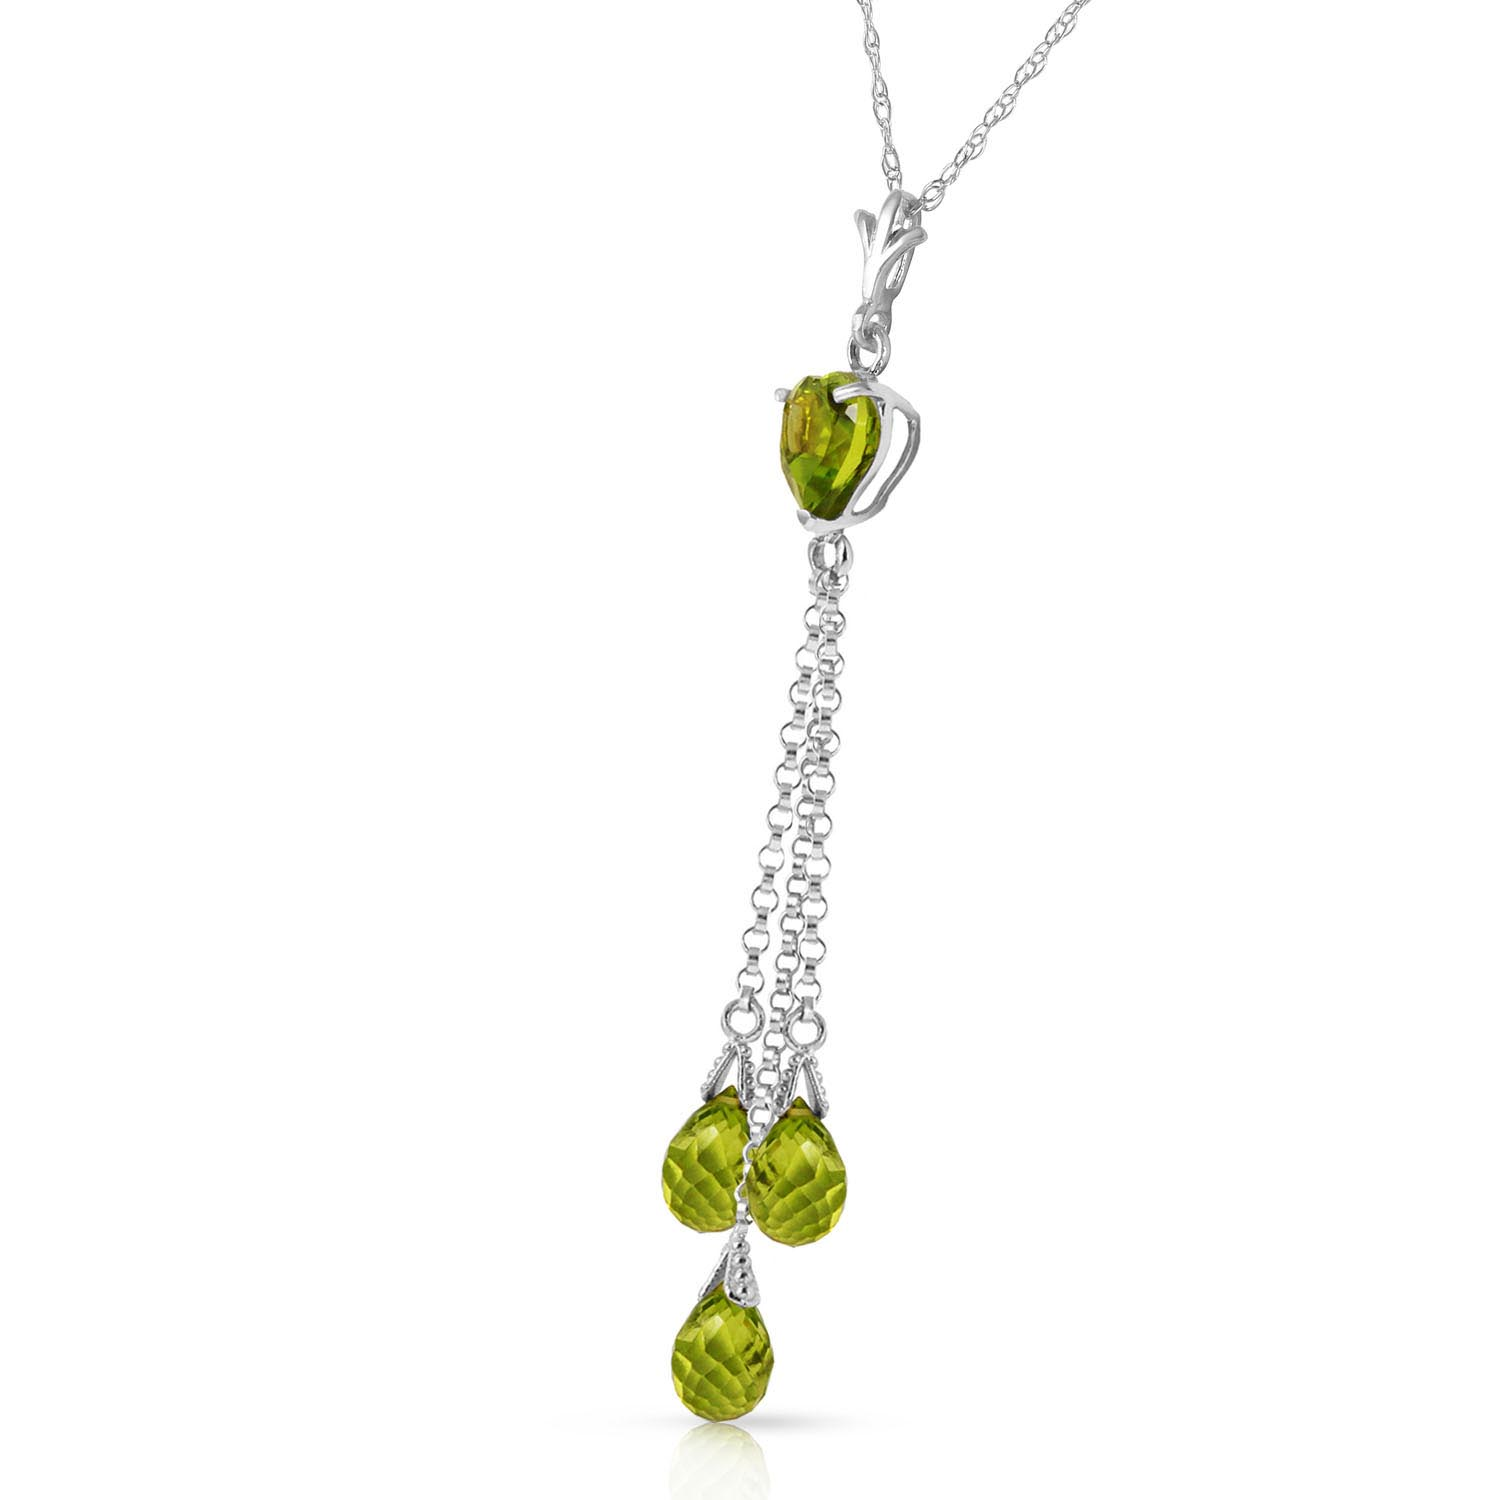 Peridot Comet Tail Heart Pendant Necklace 4.75ctw in 14K White Gold